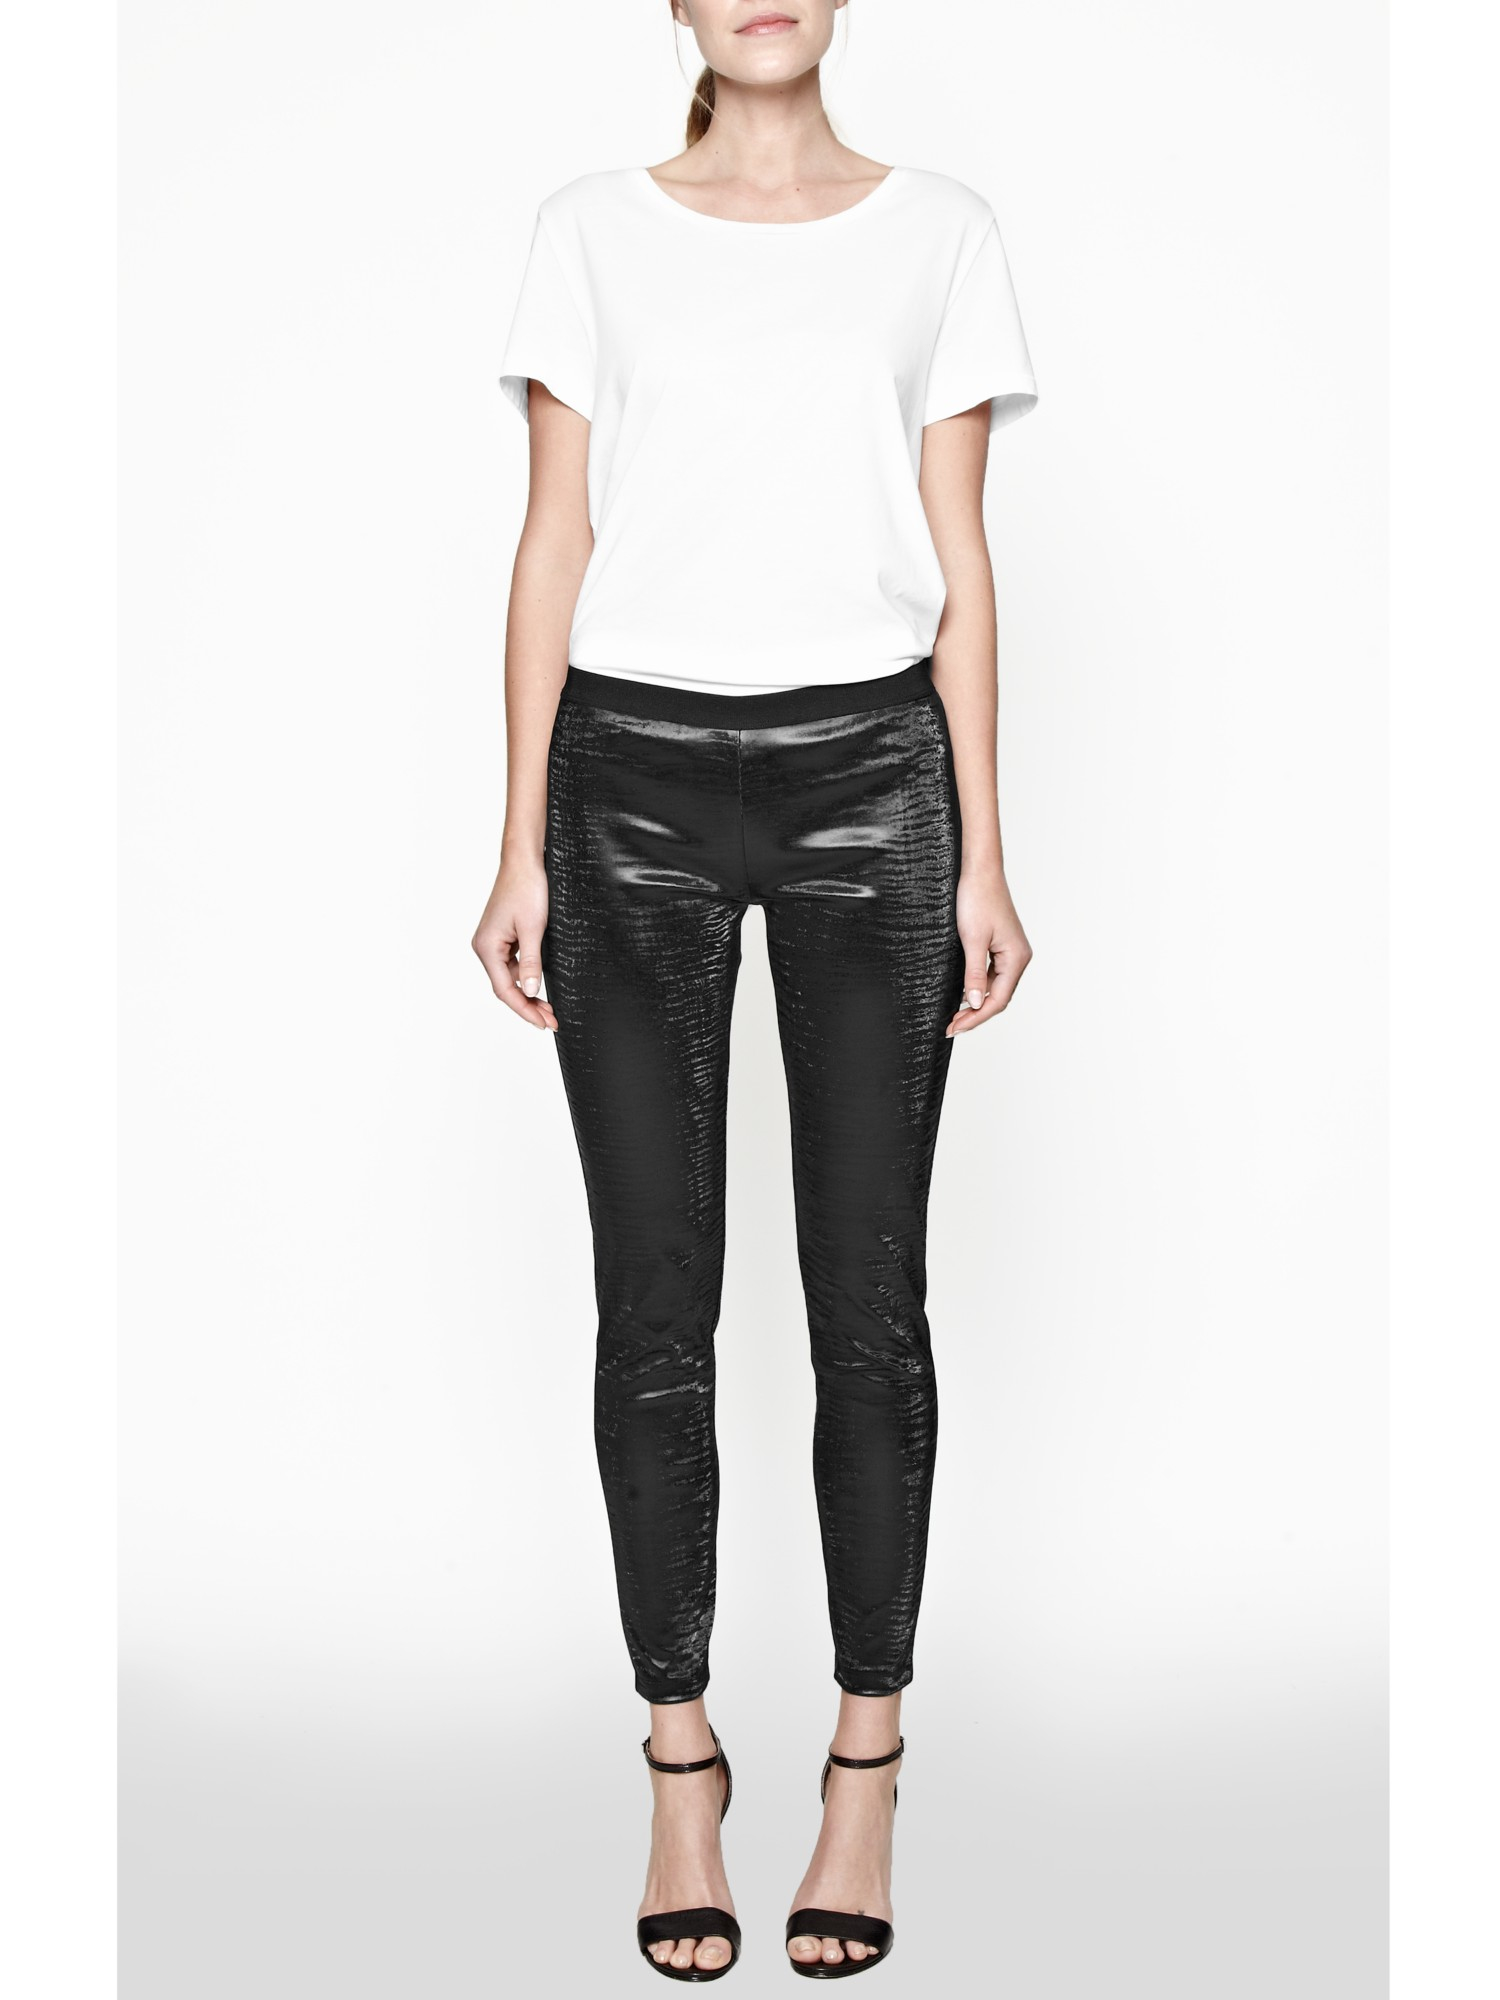 French Connection Lacquer Faux Leather Leggings in Black